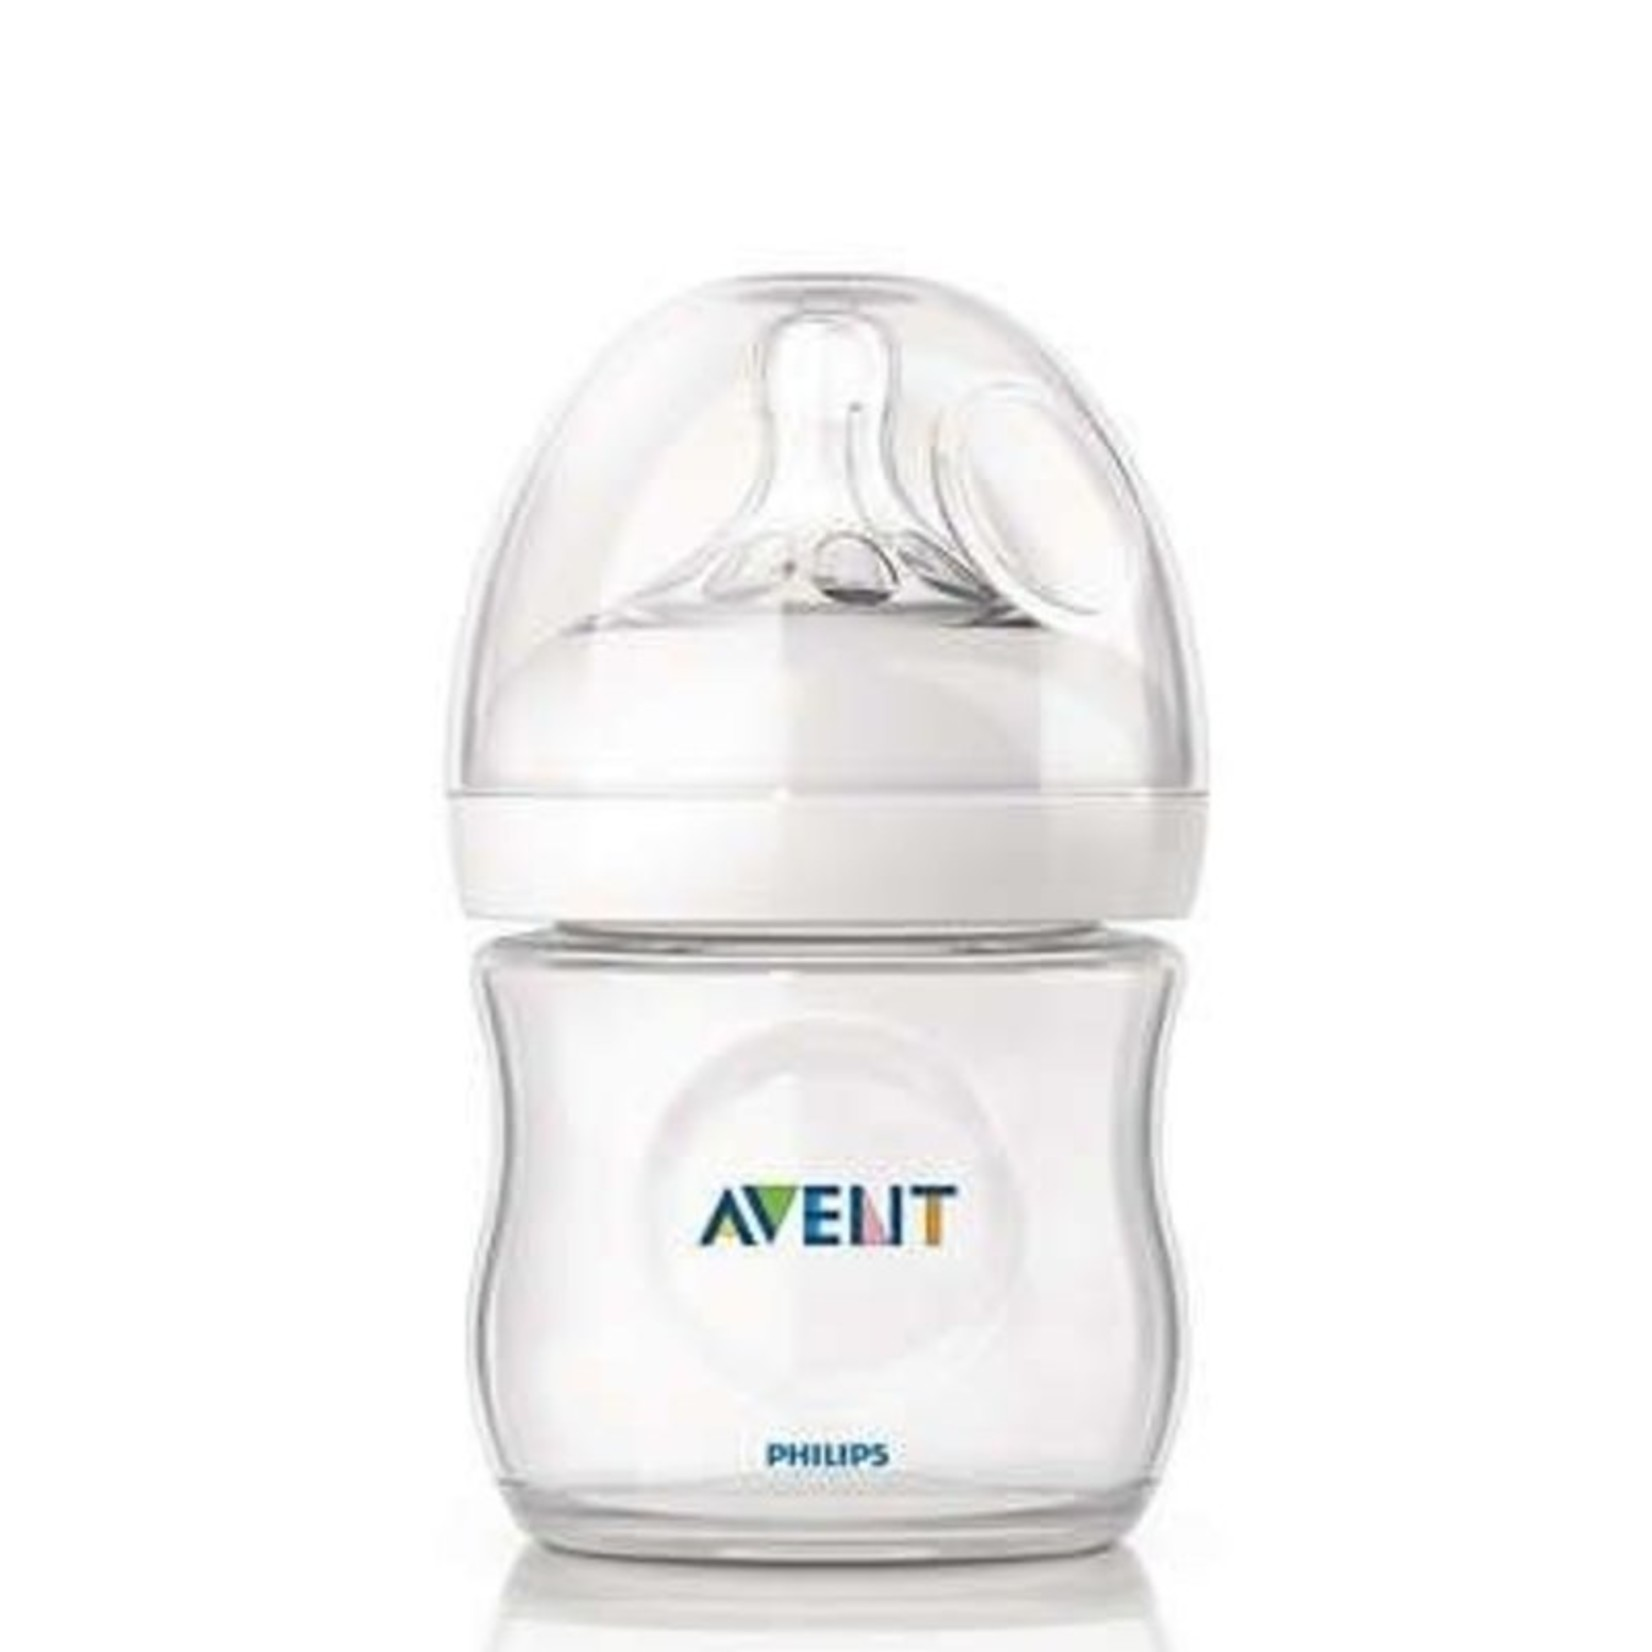 Avent Avent Natural zuigfles 125ml